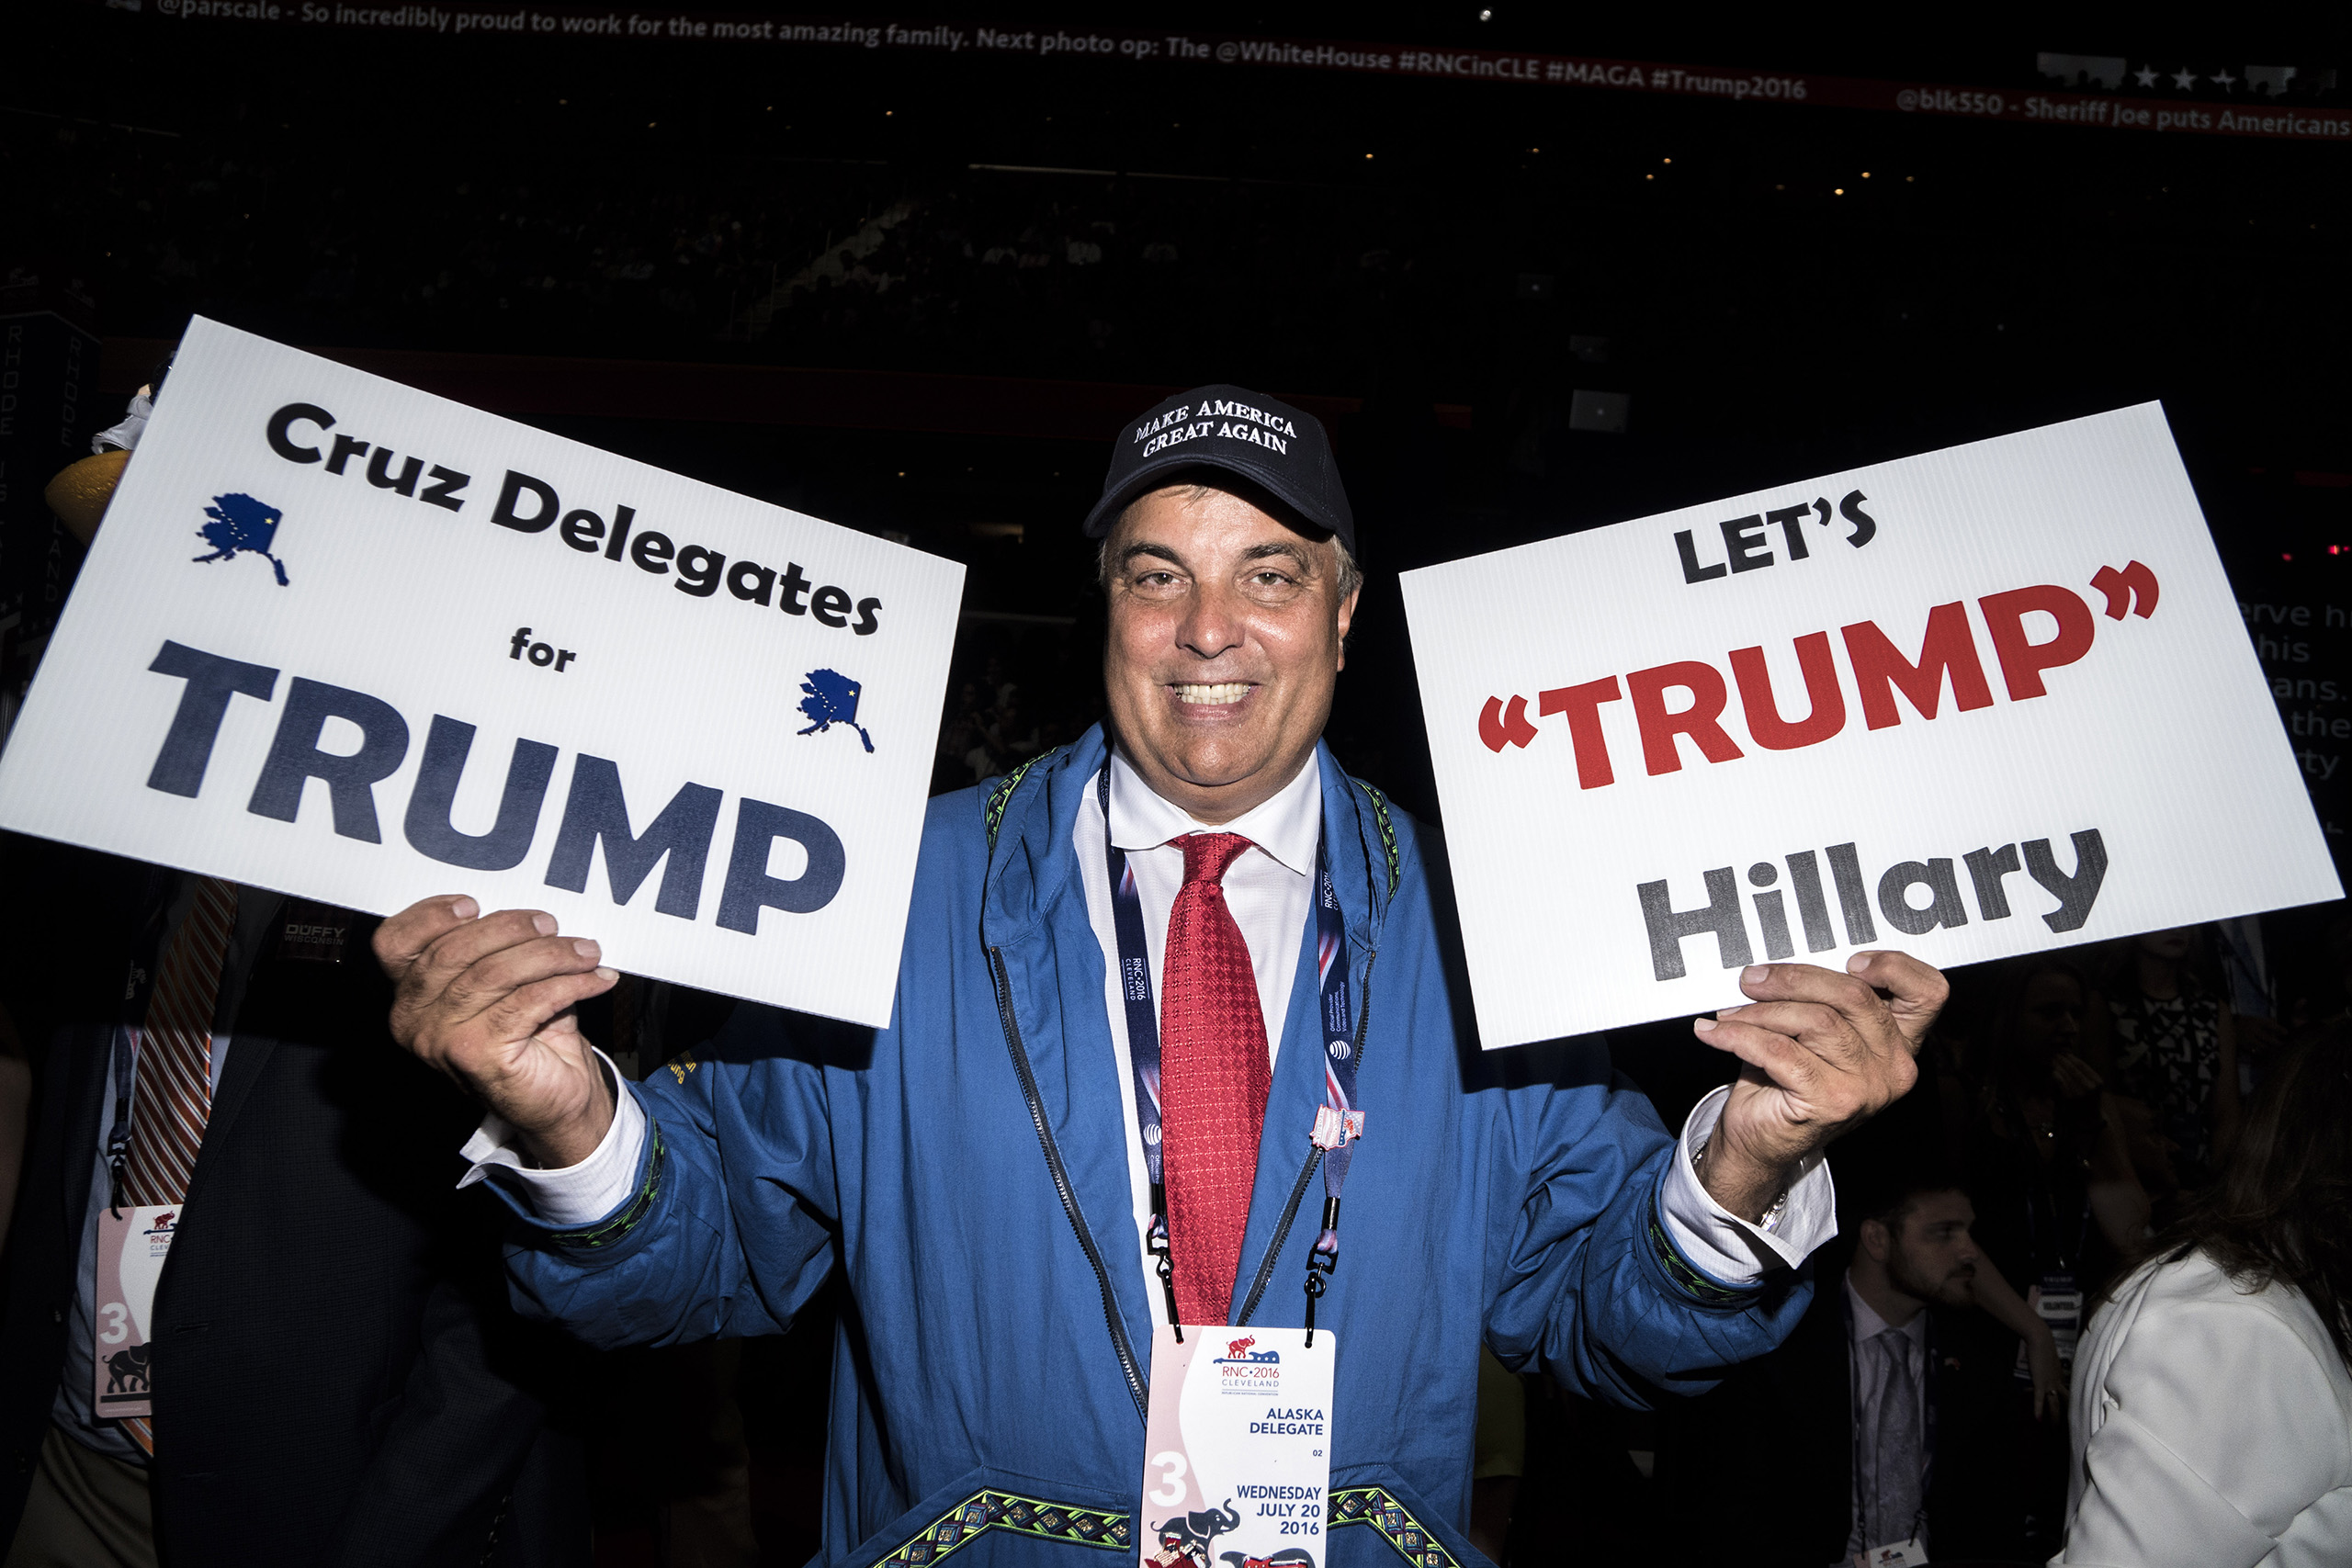 A delegate from Alaska show his support for Trump at the Republican National Convention on July 20, 2016, at the Quicken Loans Arena in Cleveland, Ohio.